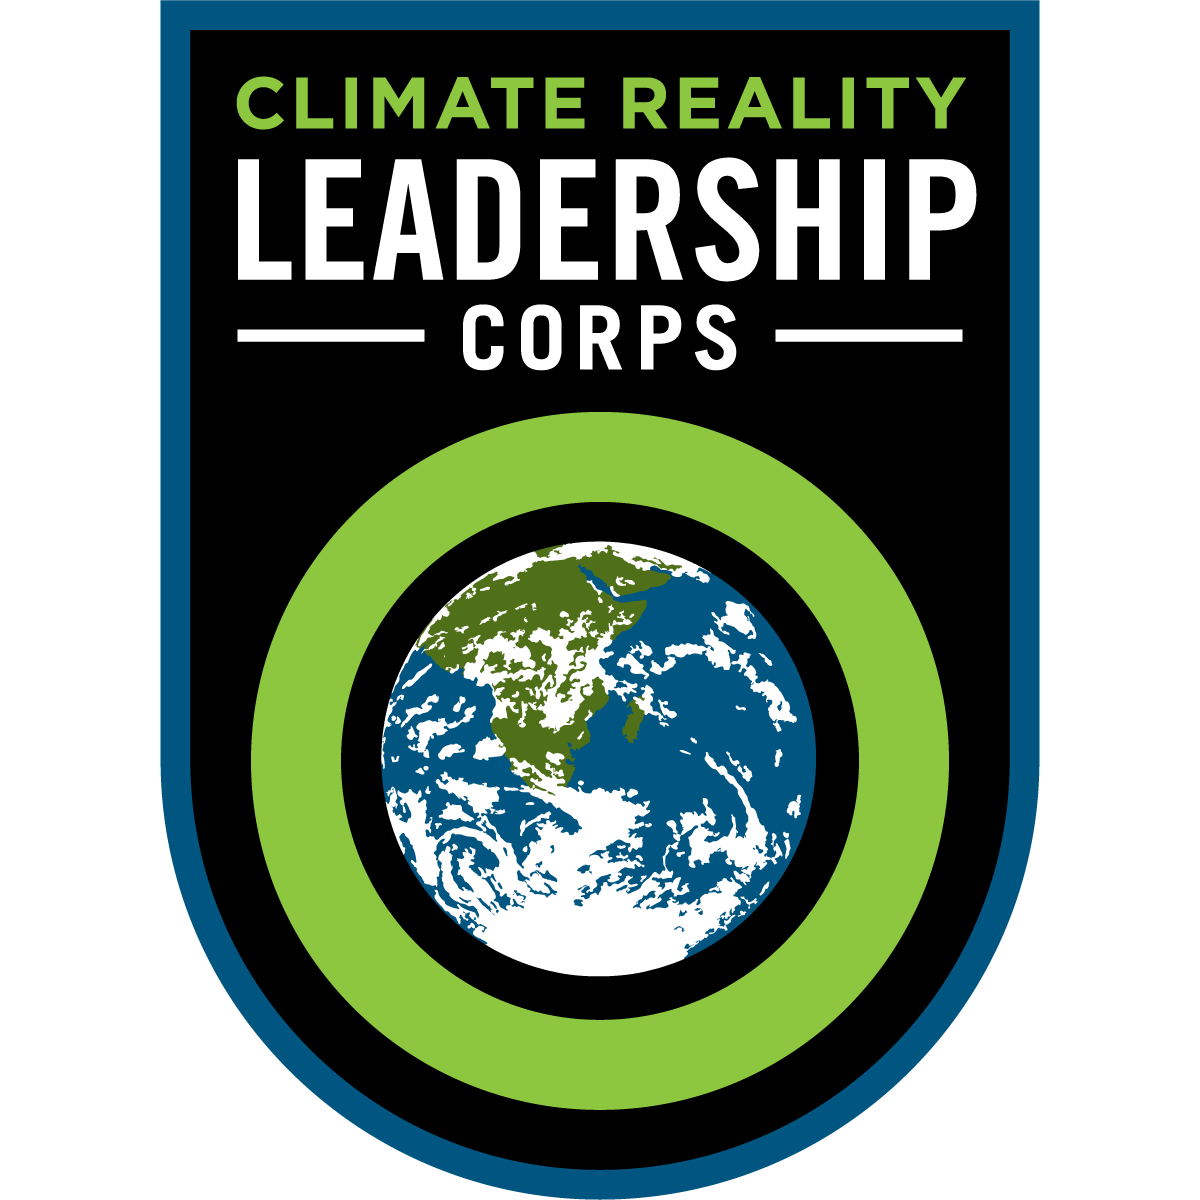 STORMSENSOR ACCEPTED INTO THE CLIMATE REALITY LEADERSHIP CORPS